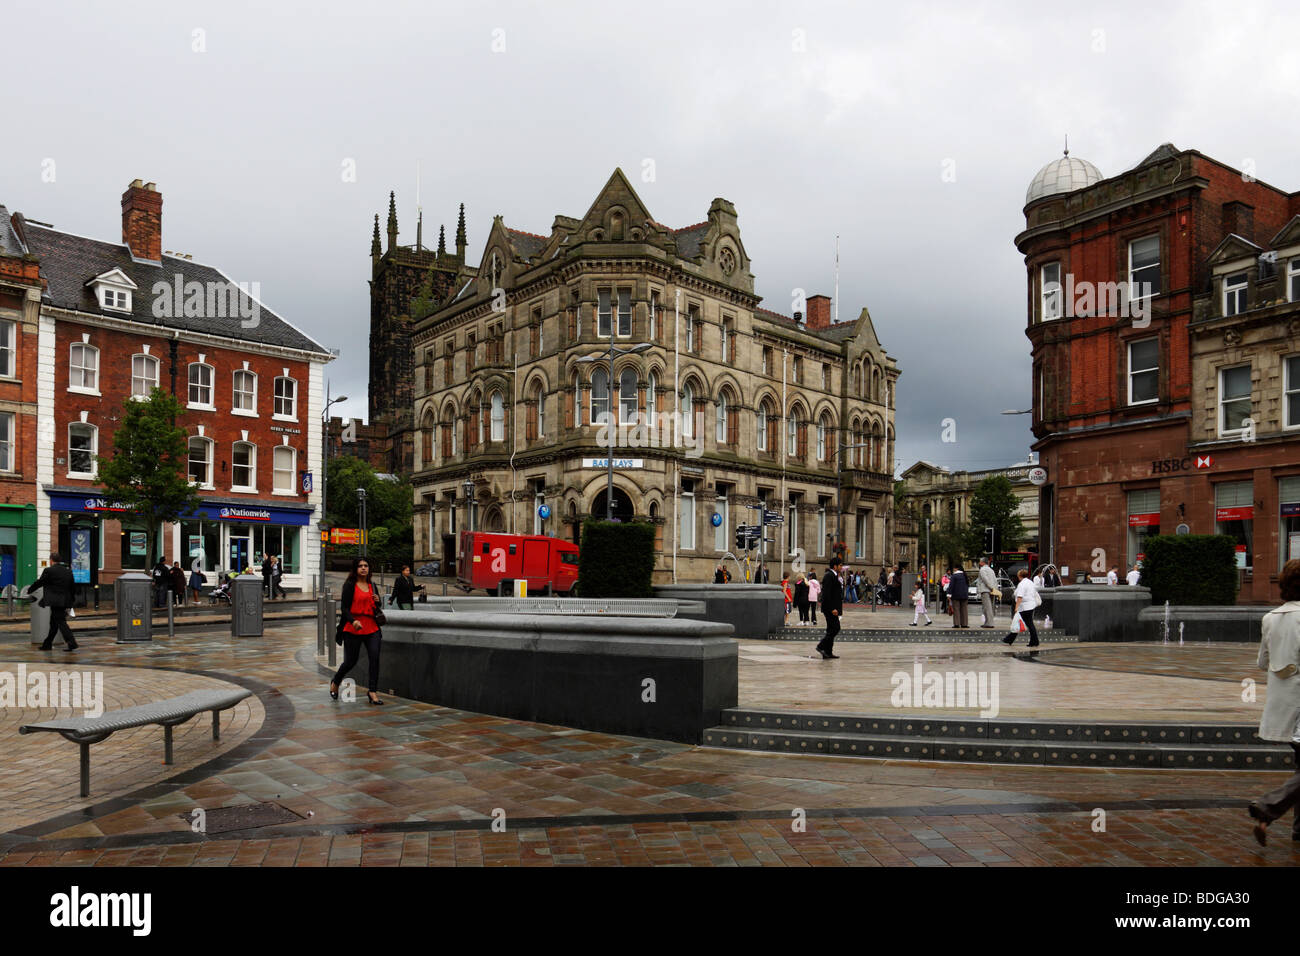 Queen's Square, Wolverhampton. Showing the new fountain water feature and surrounding banks - Stock Image